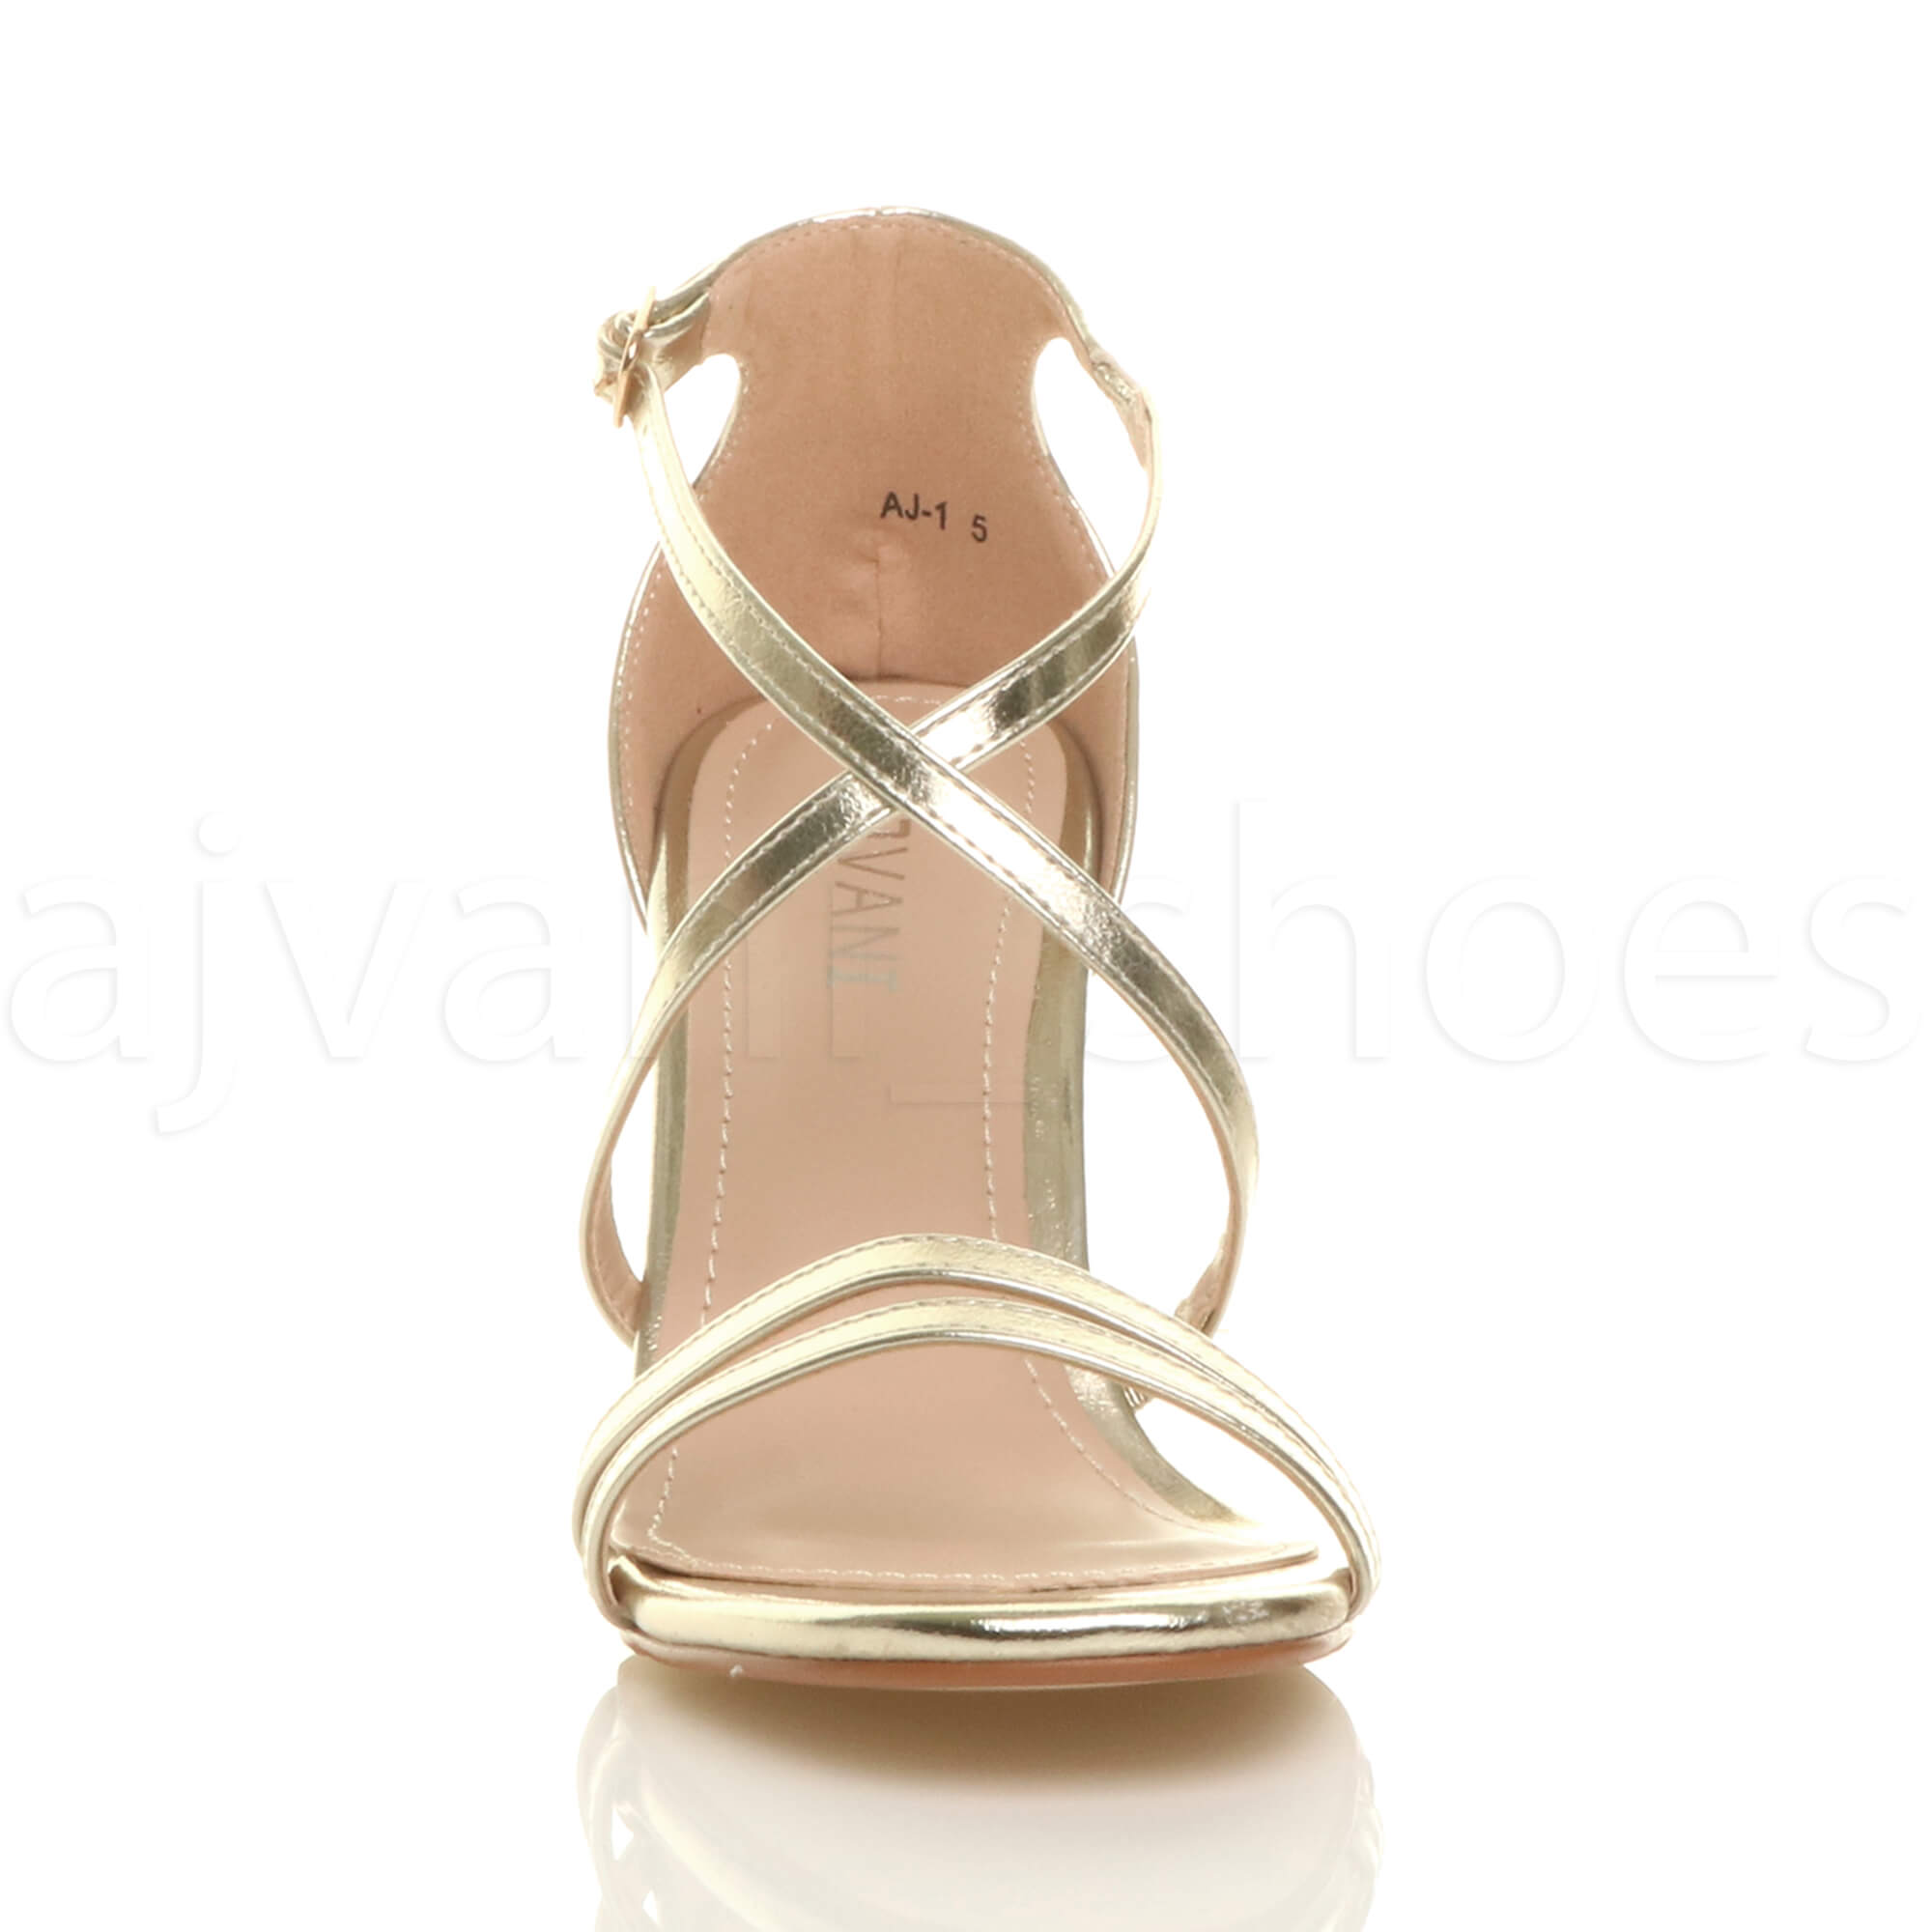 WOMENS-LADIES-MID-HIGH-HEEL-STRAPPY-CROSSOVER-WEDDING-PROM-SANDALS-SHOES-SIZE thumbnail 62